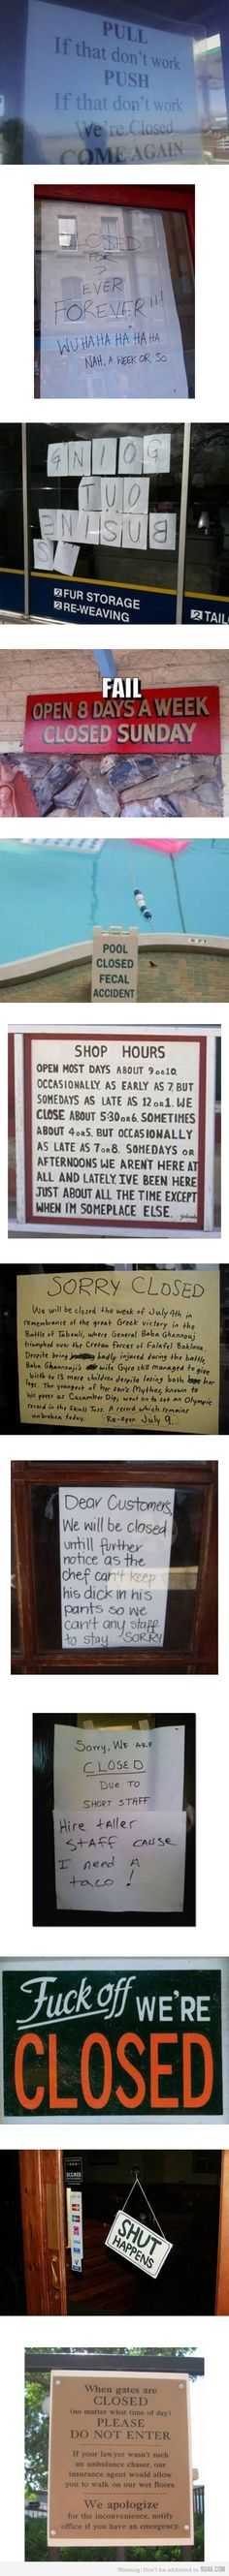 Closed signs.